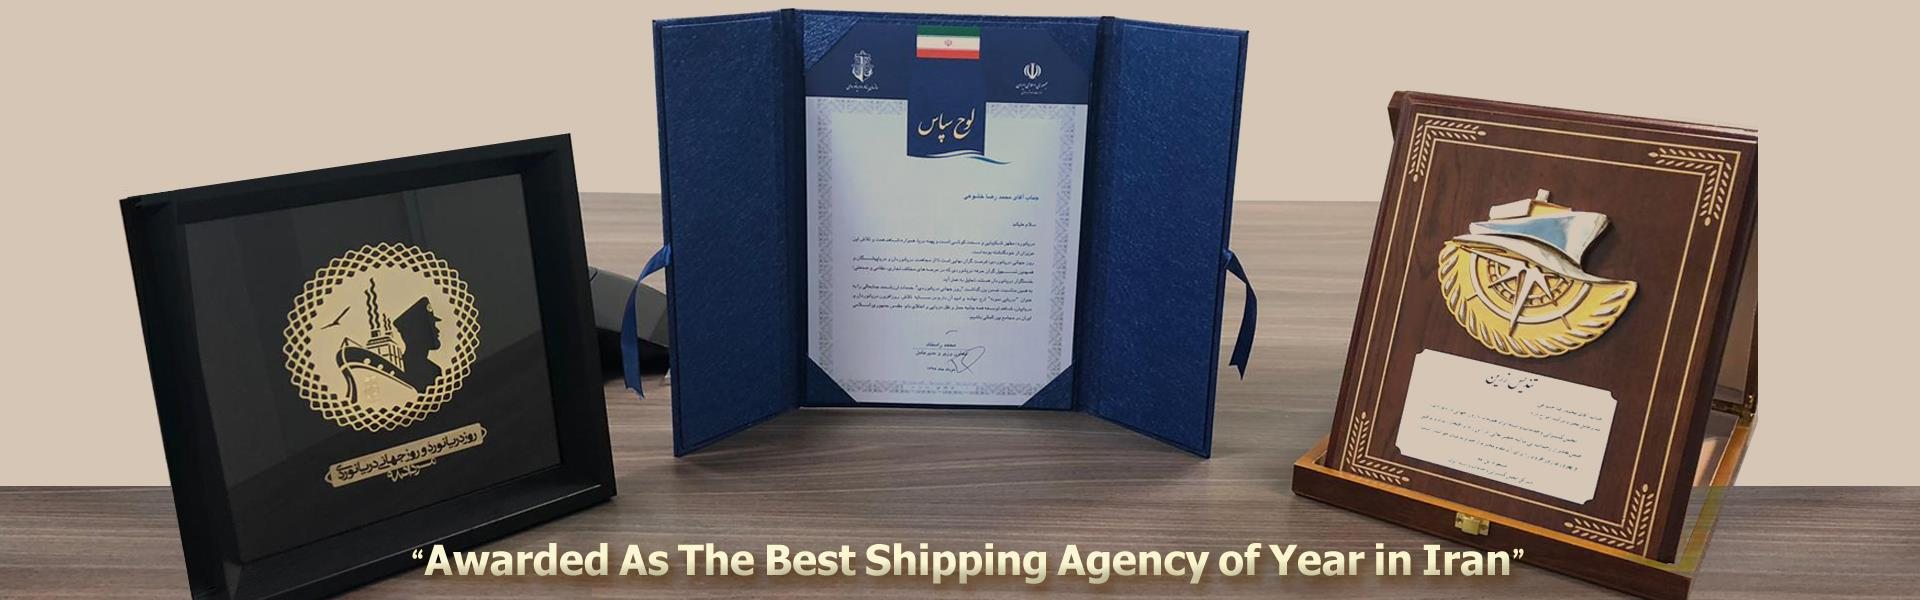 """Awarded As The Best Shipping Agency of Year in Iran"""